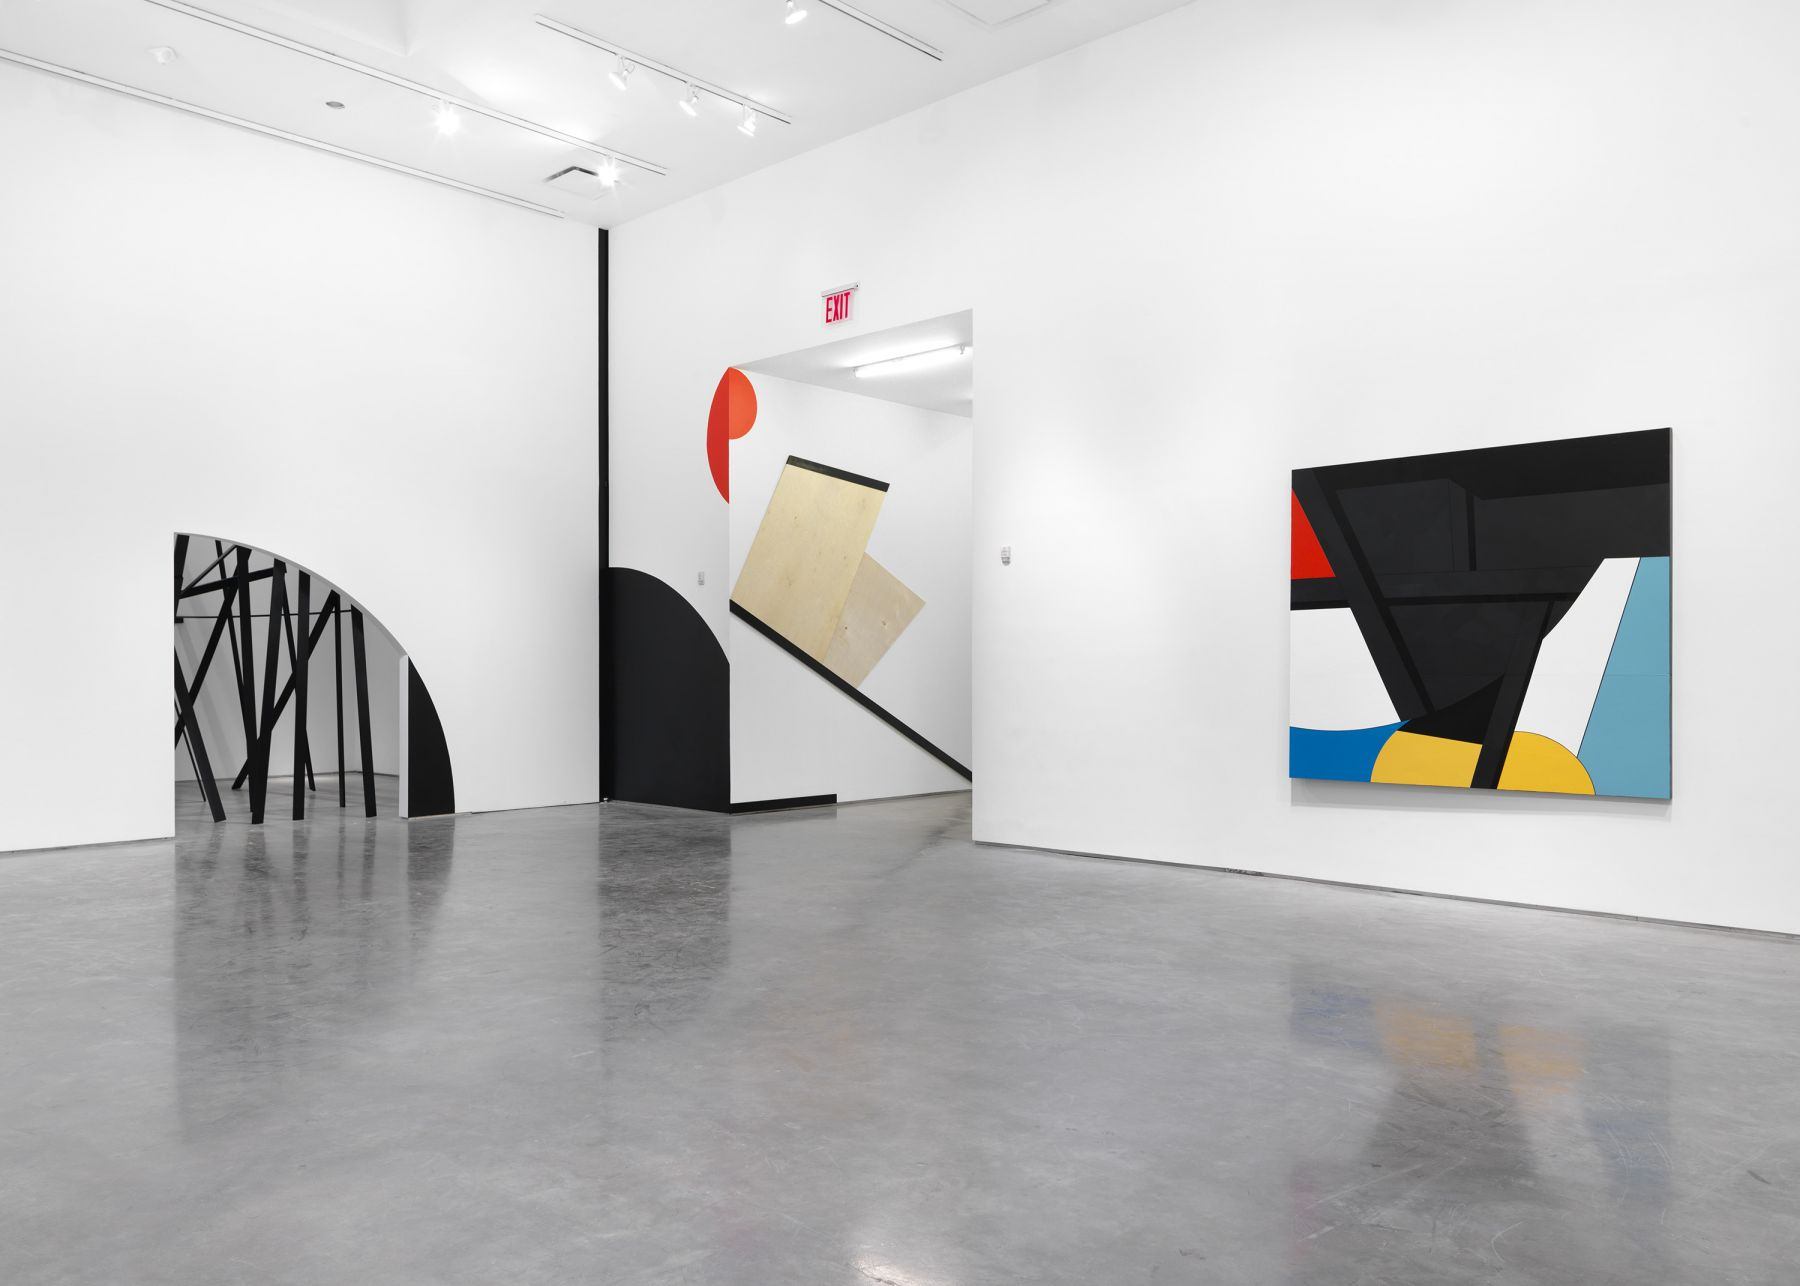 Personal Effects in BLACK(Installation View), Boesky Gallery, 2018